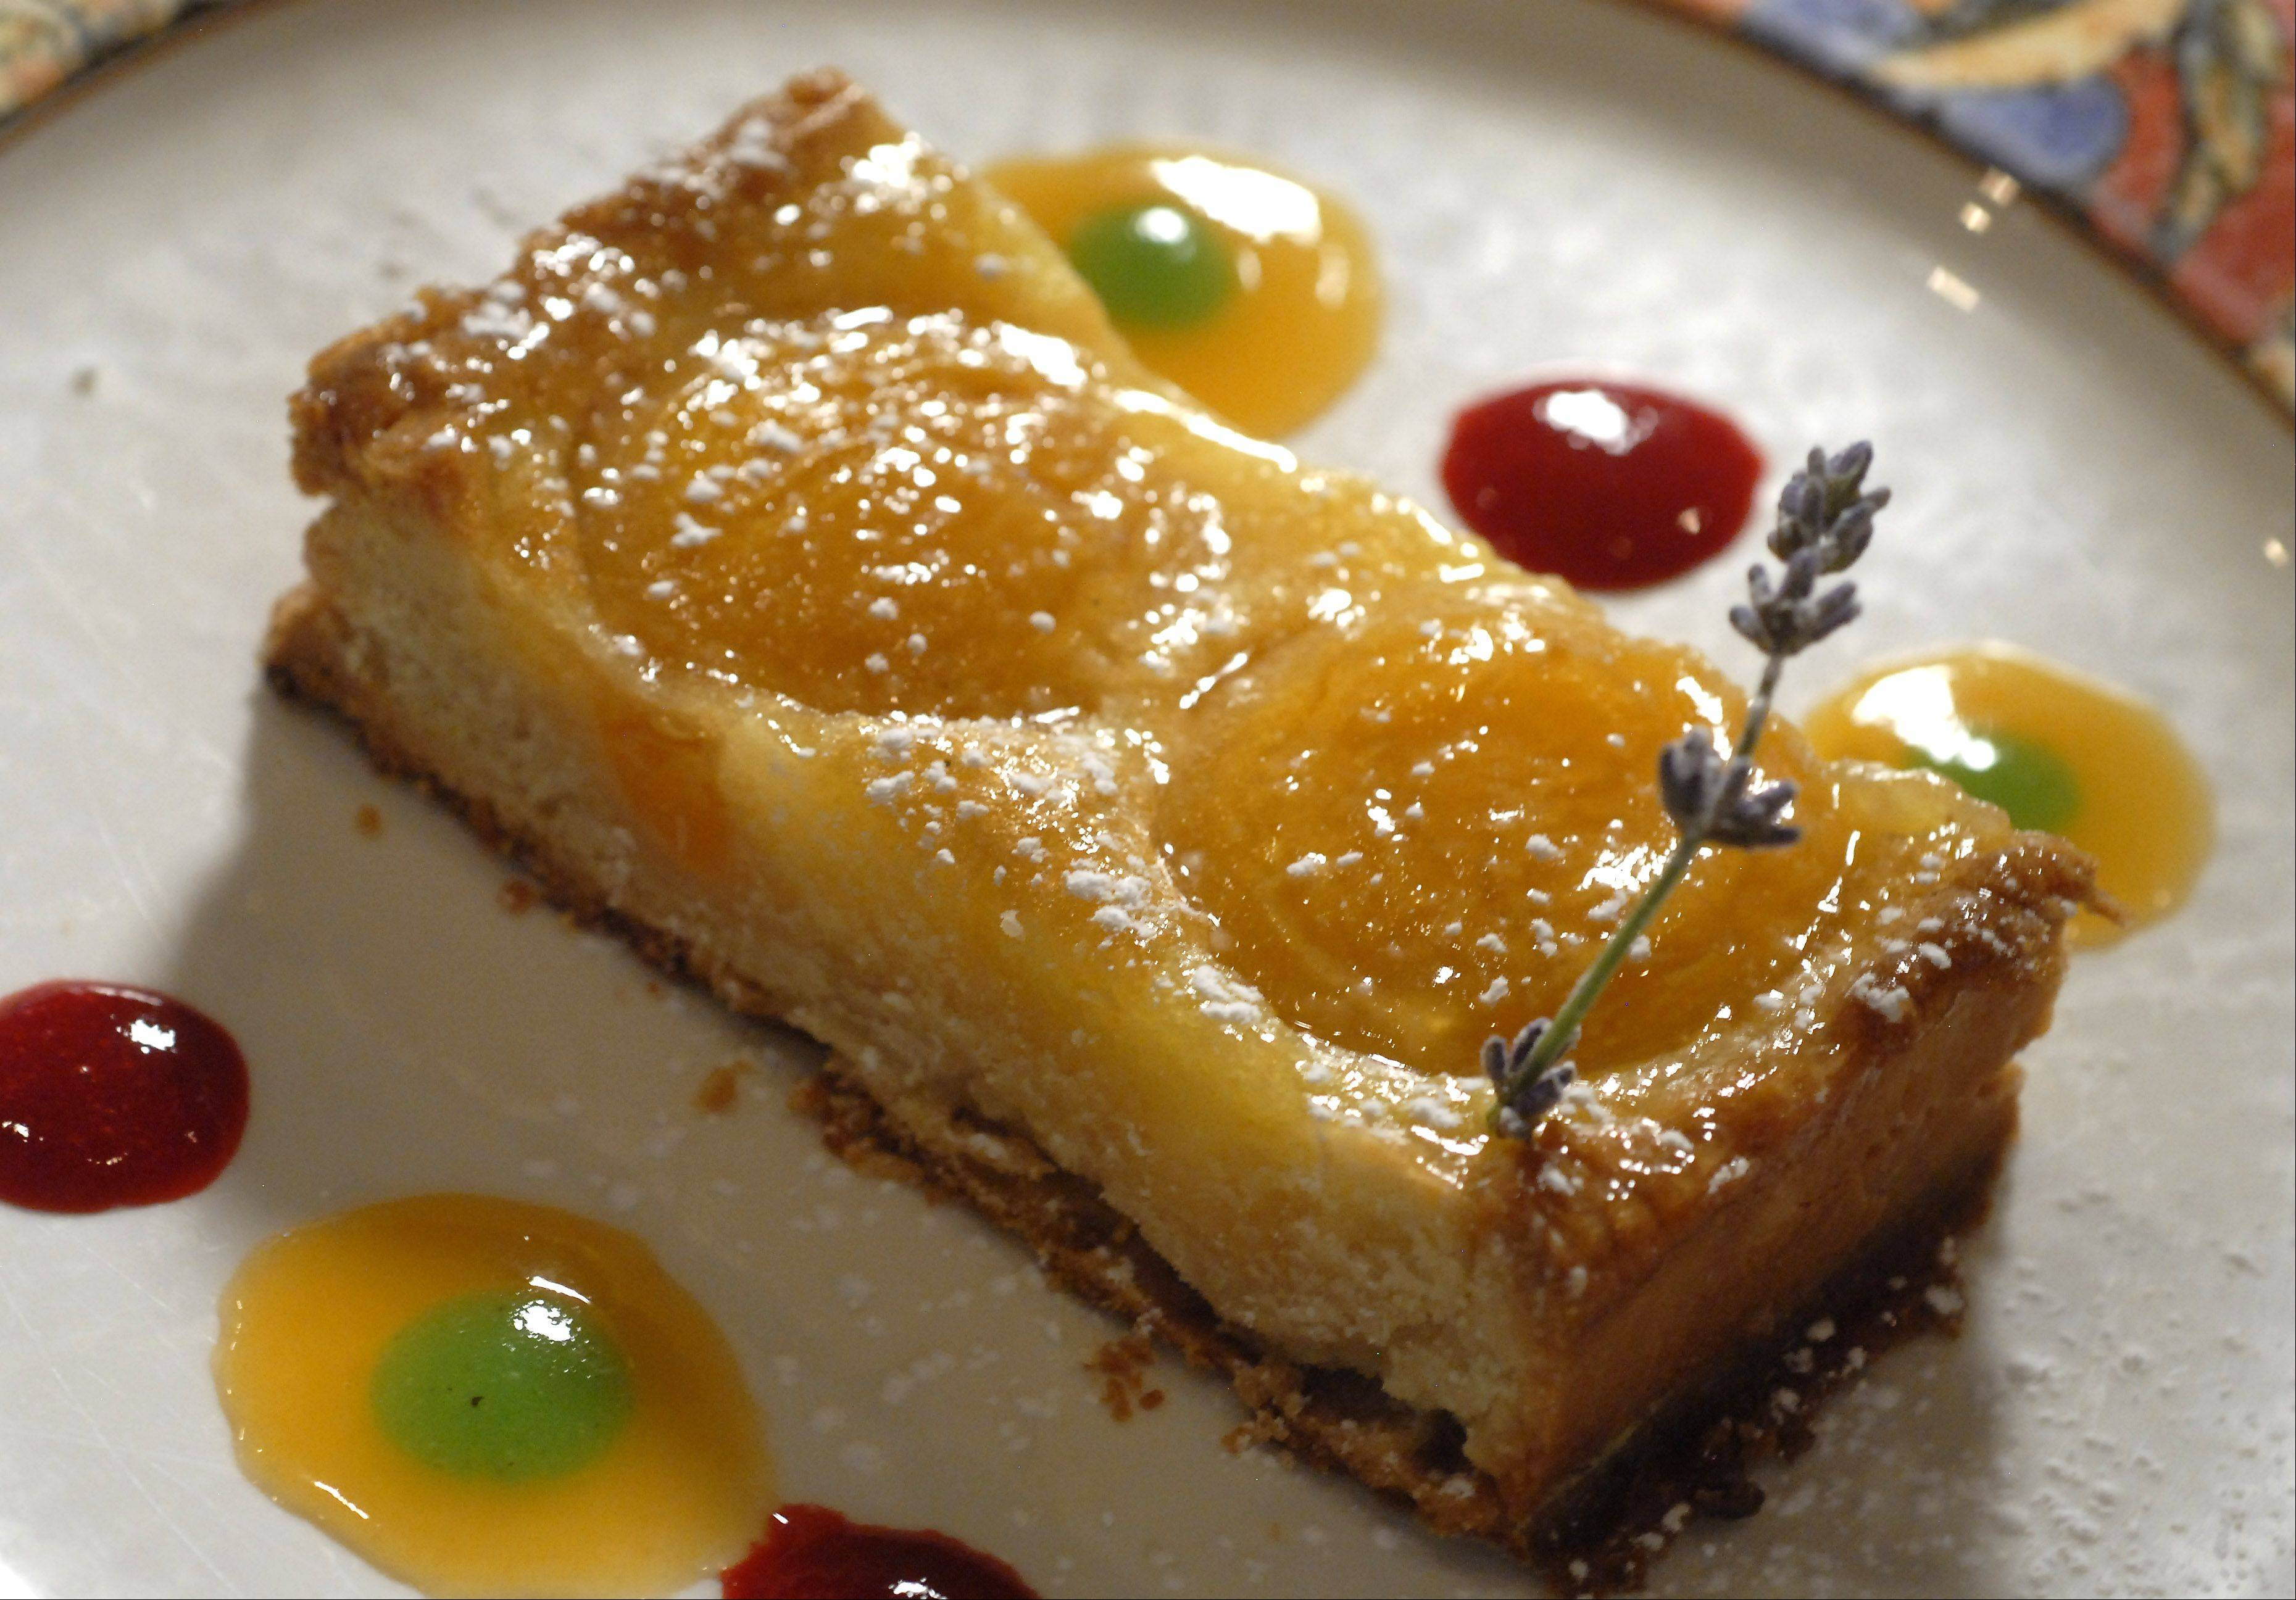 Bill Zars/bzars@dailyherald.com Apricot tart by Chef Michael Maddox at Le titi de Paris restaurant in Arlington Heights.